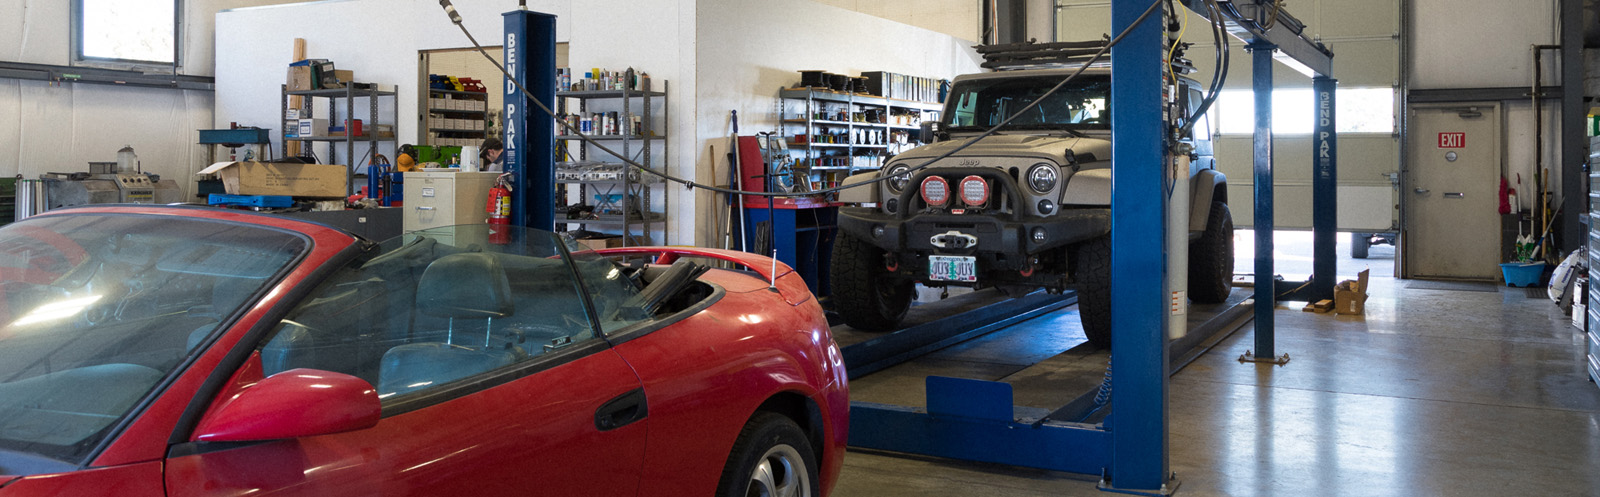 Specialty Automotive Service & Repair in Bend, OR